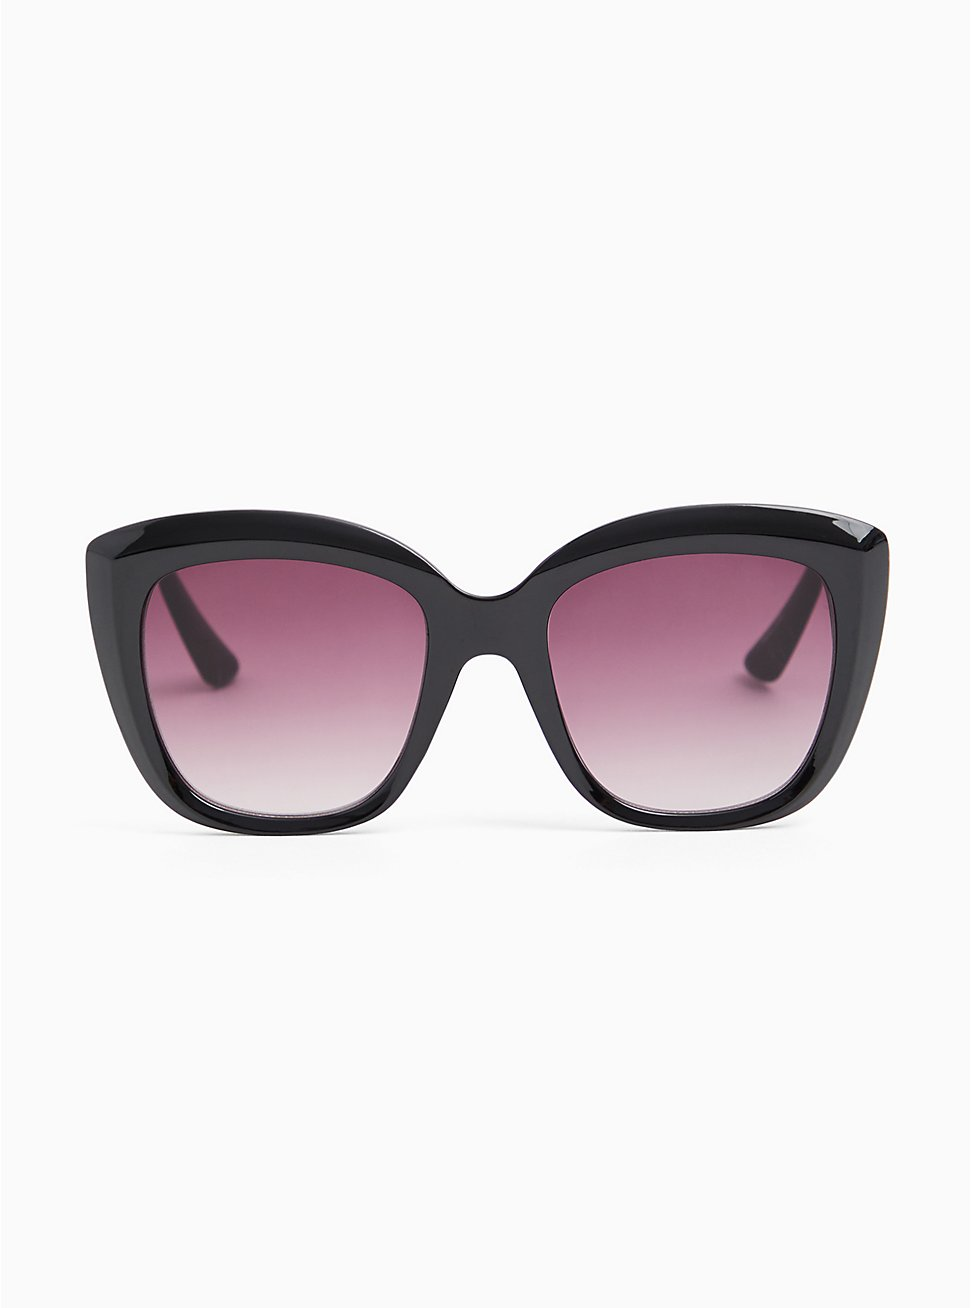 Black Square Cat Eye Sunglasses, , hi-res